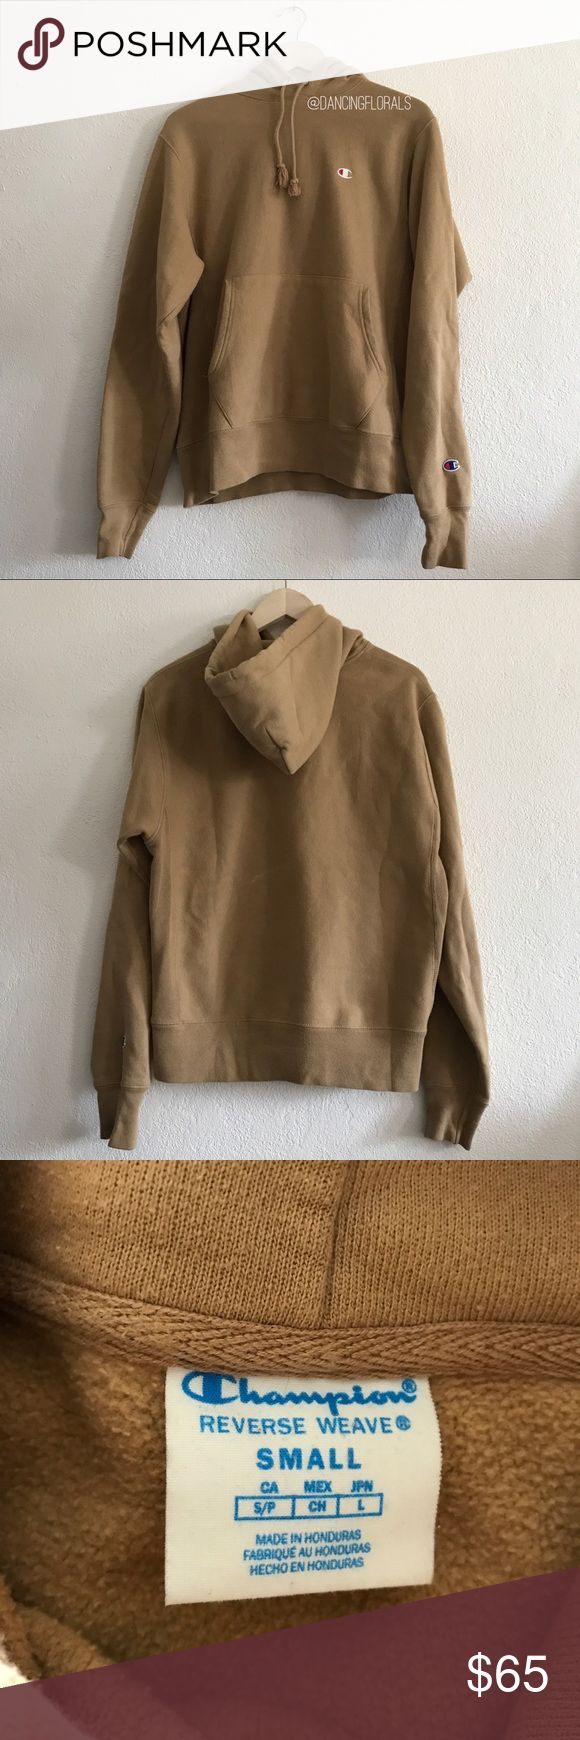 champion x urban outfitters beige hoodie champion x urban outfitters beige hoodie | has a flaw on the back with a white slash. | men's size S so it would be quite oversized for a women's size s Champion Sweaters